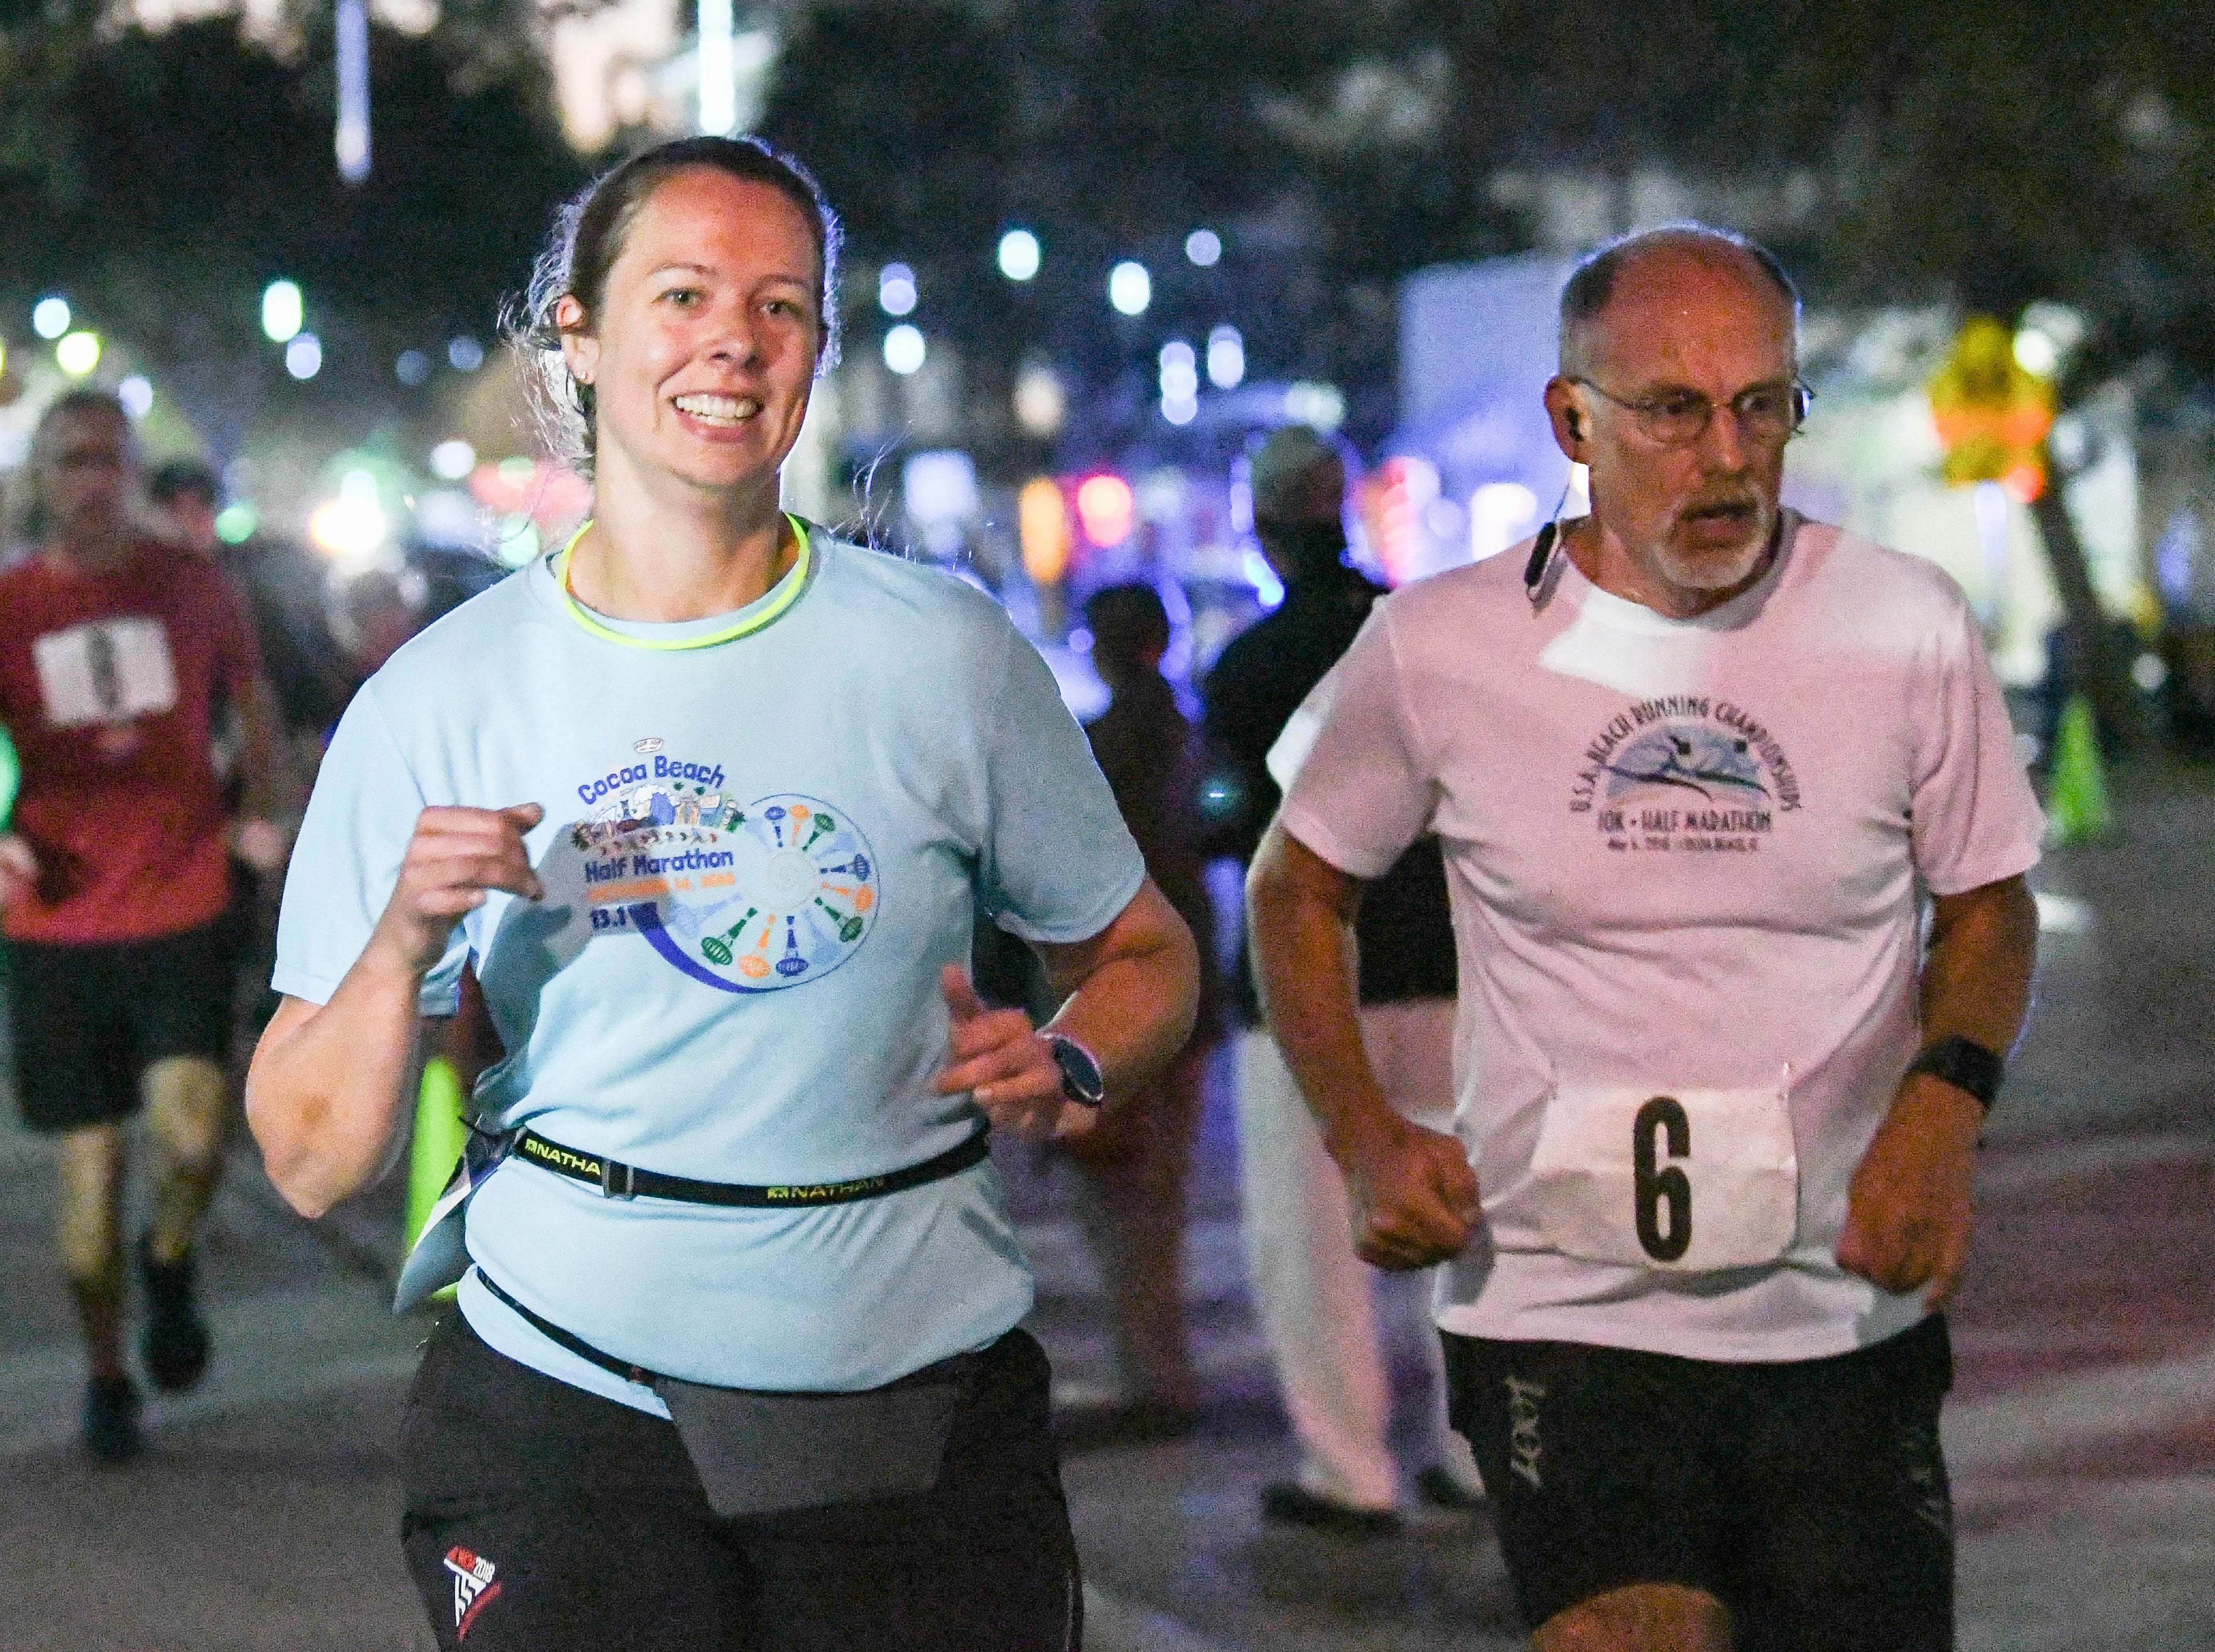 Participants in the inaugural Game On Run for Responders 5K Run/Walk run through the streets of Cocoa Village during Saturday's event.  Proceeds from the event benefit Survive First.